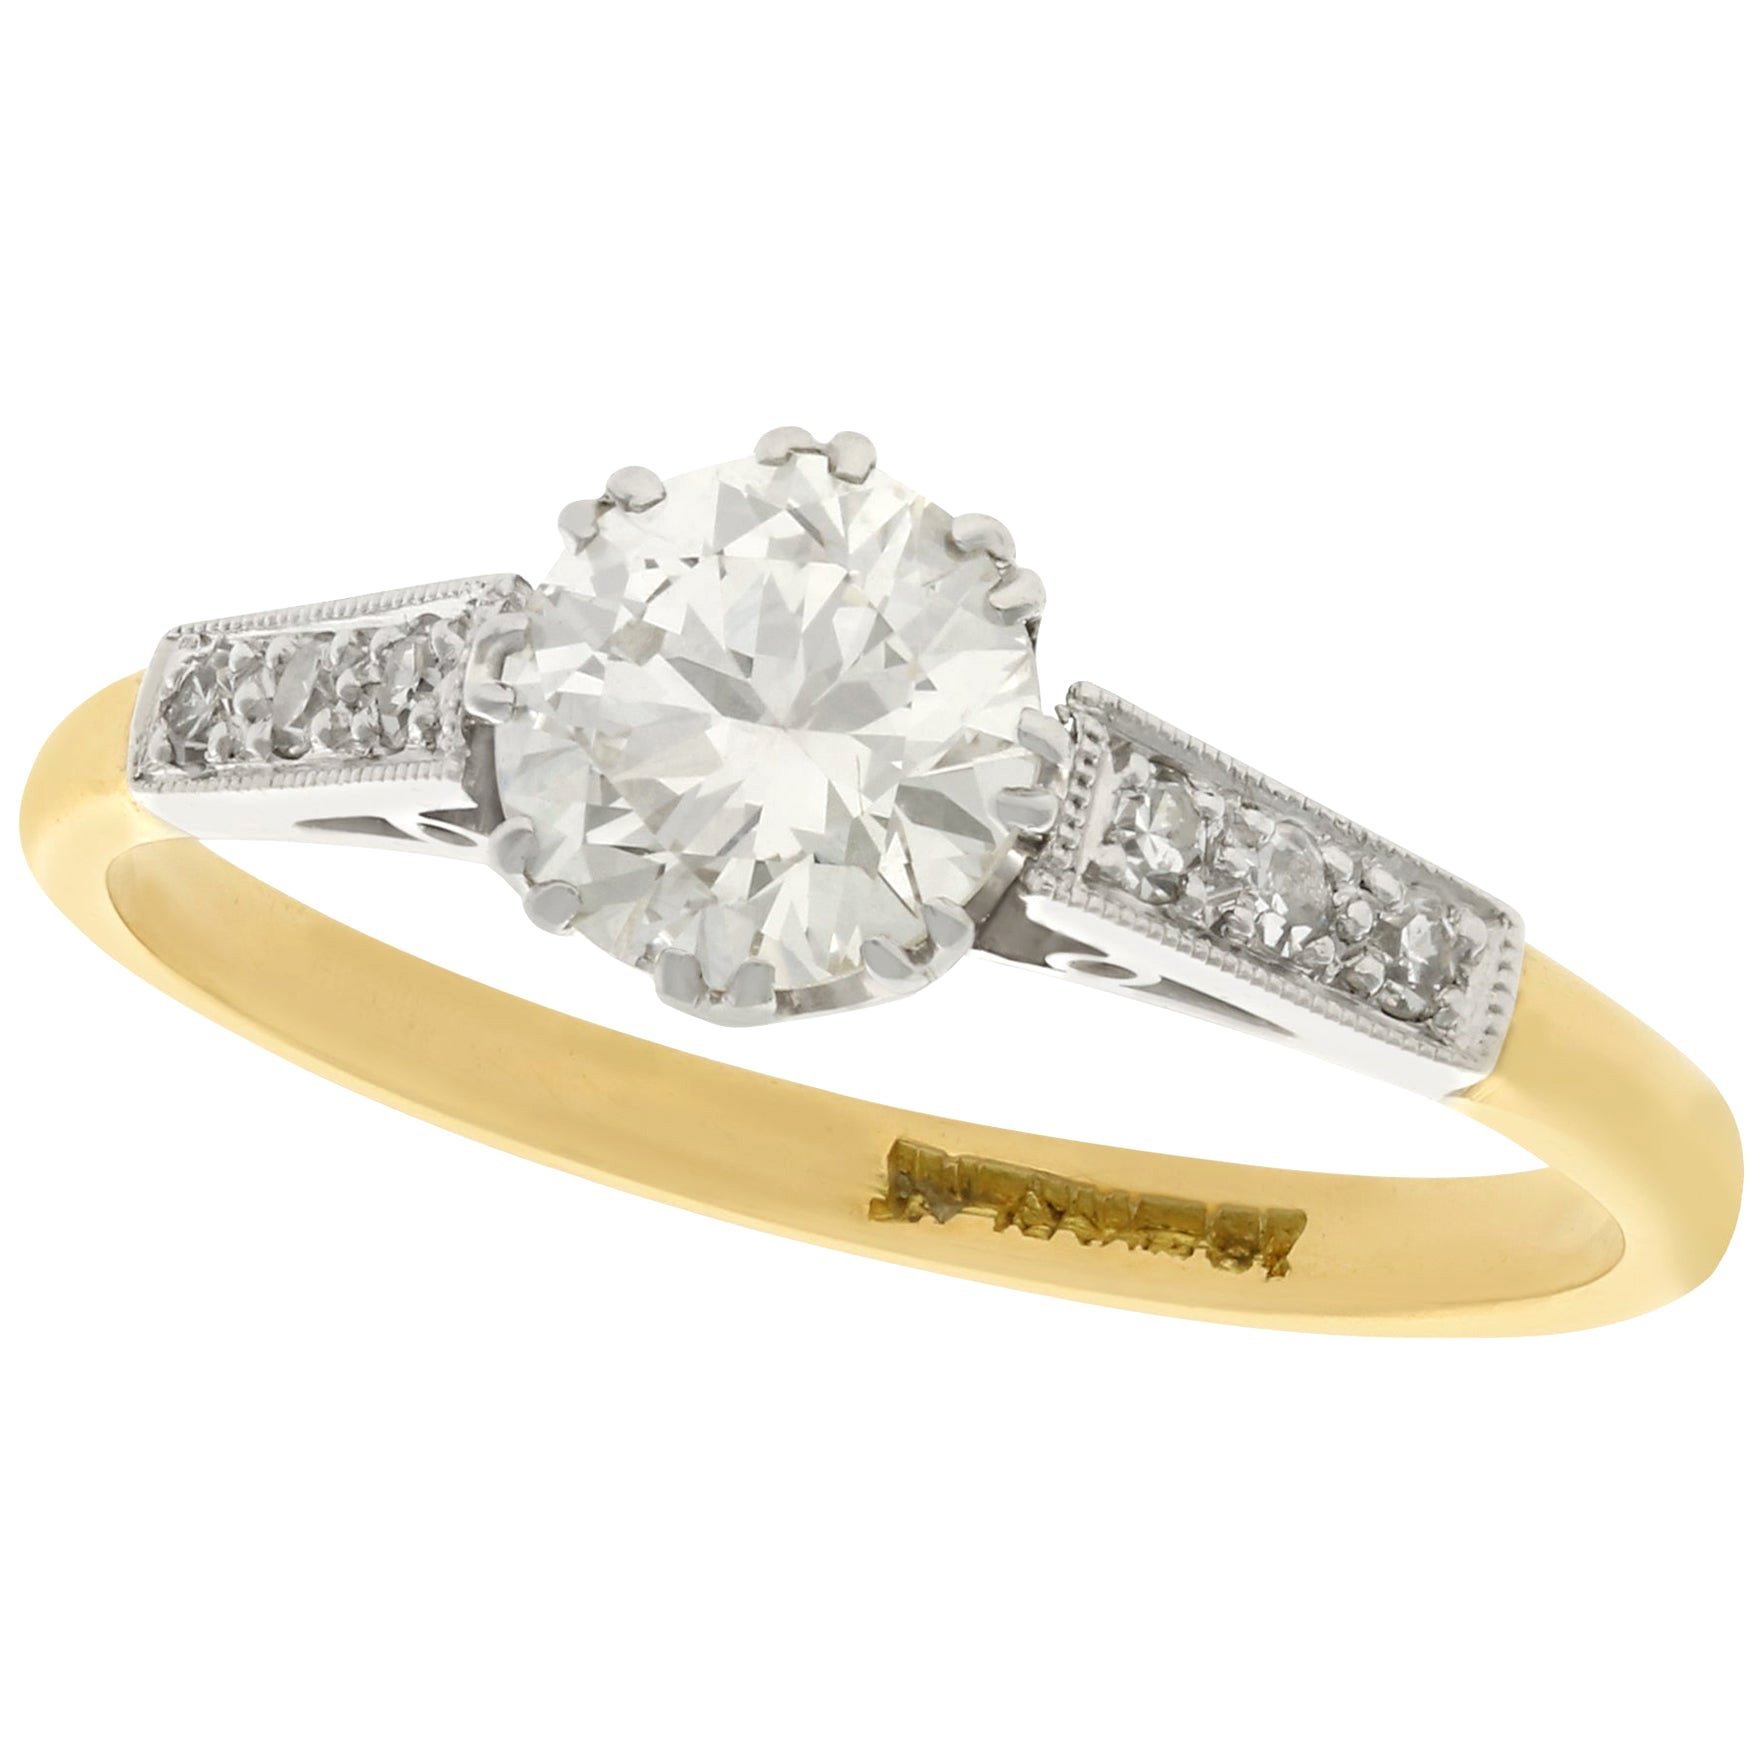 1940s Diamond and Gold Solitaire Engagement Ring